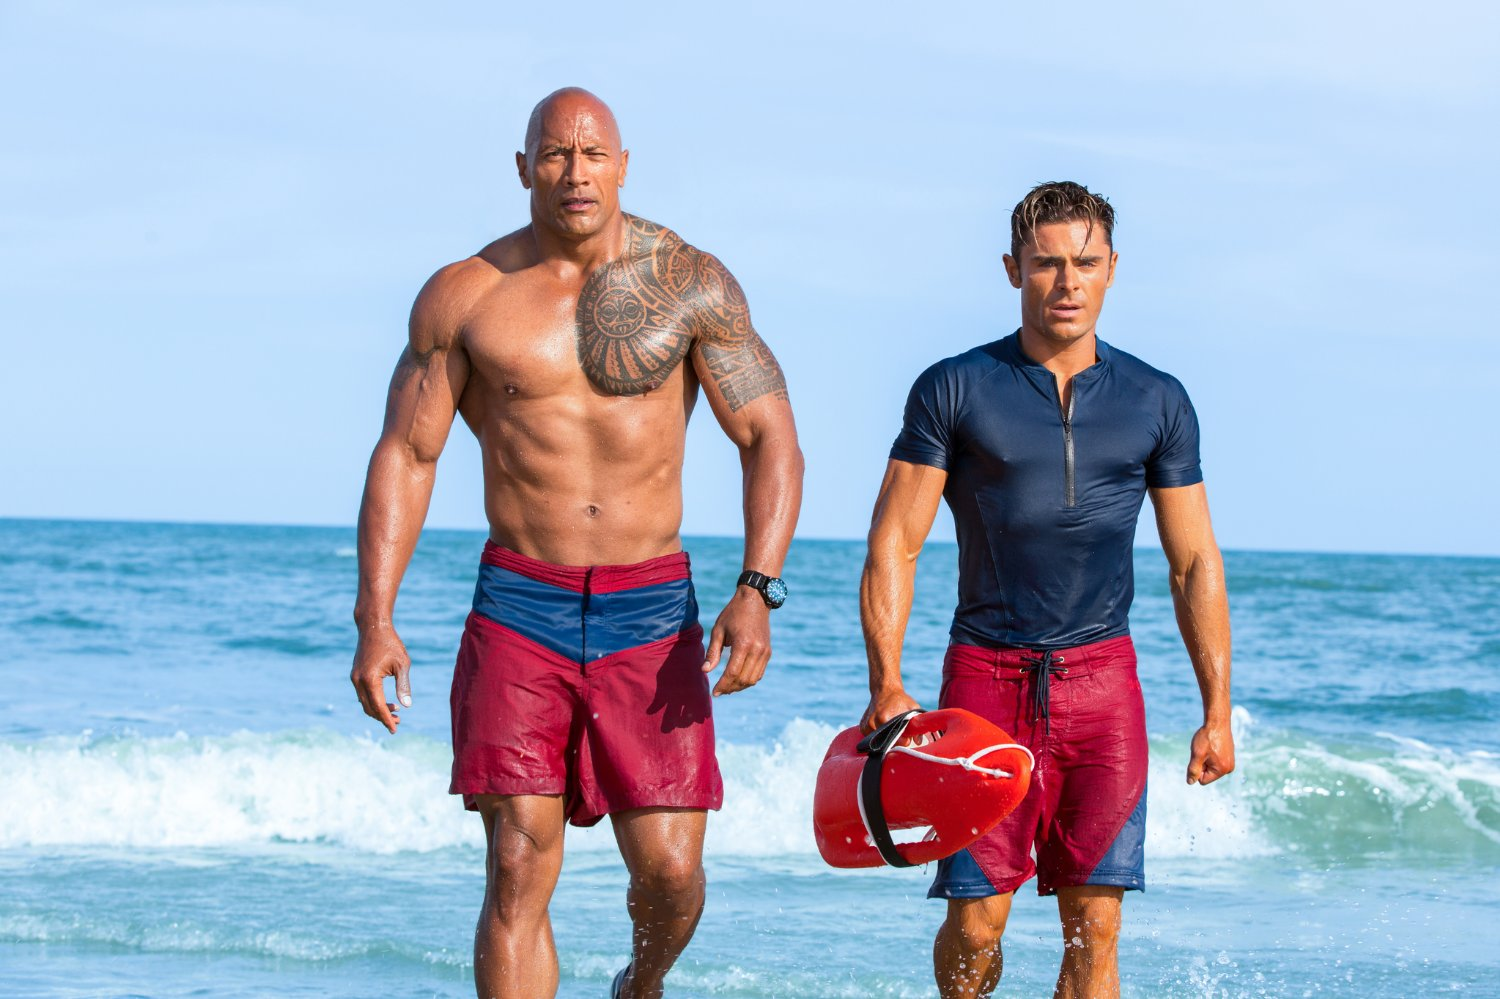 Dwayne 'The Rock' Johnson, Zac Efron